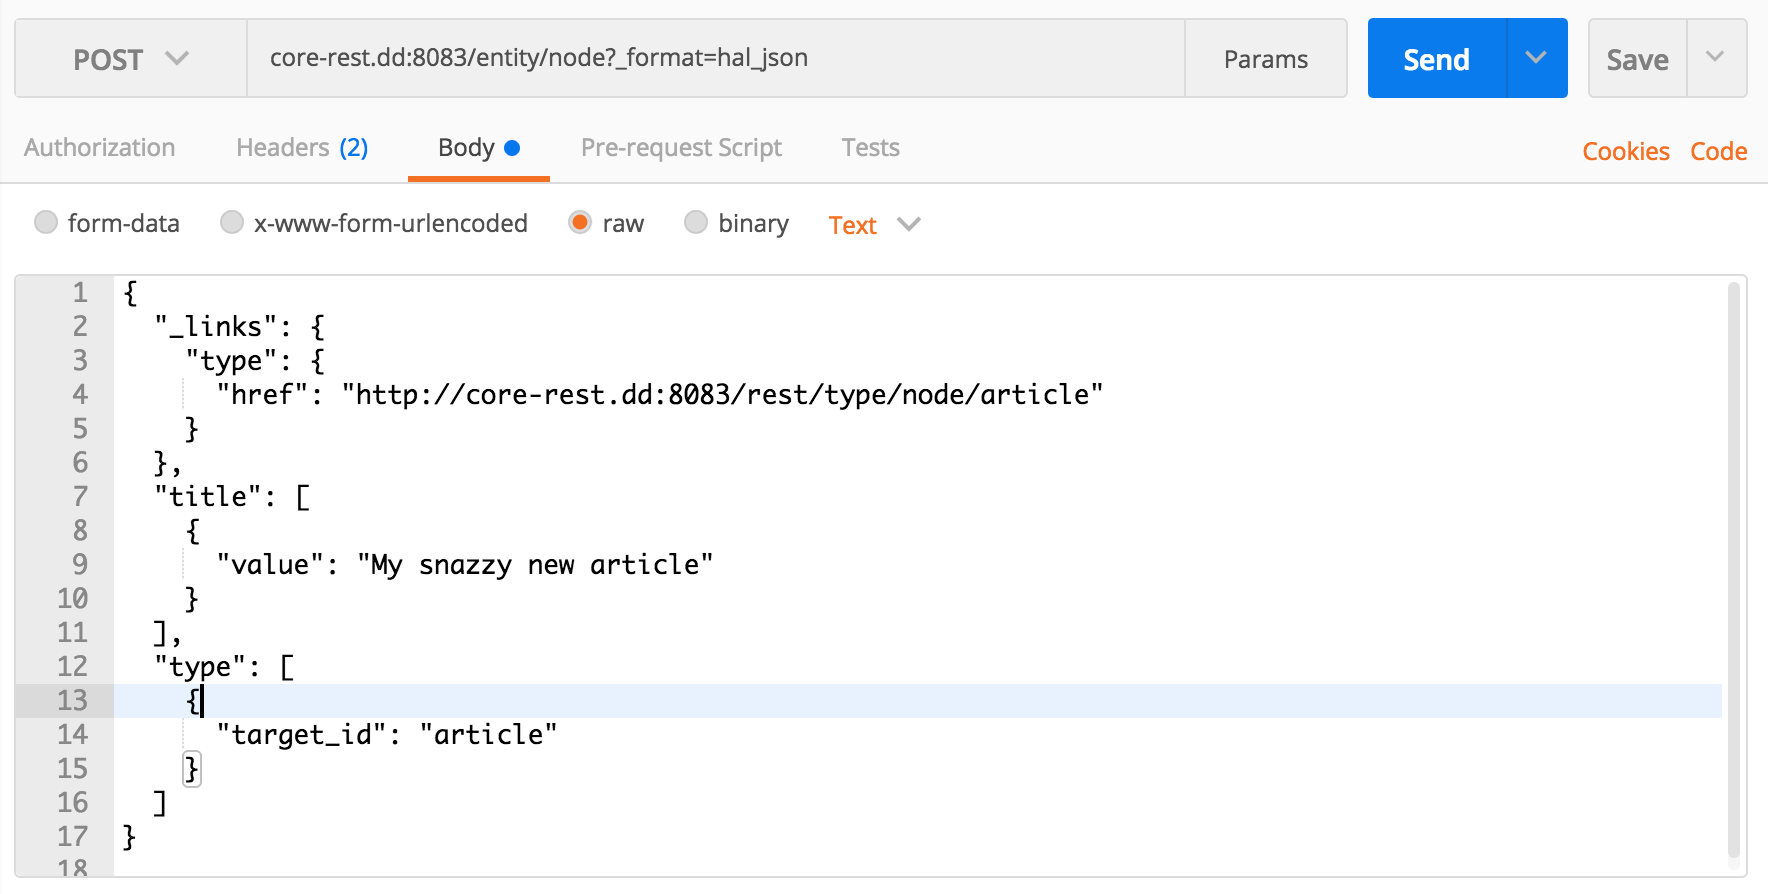 Issuing a POST request with Postman